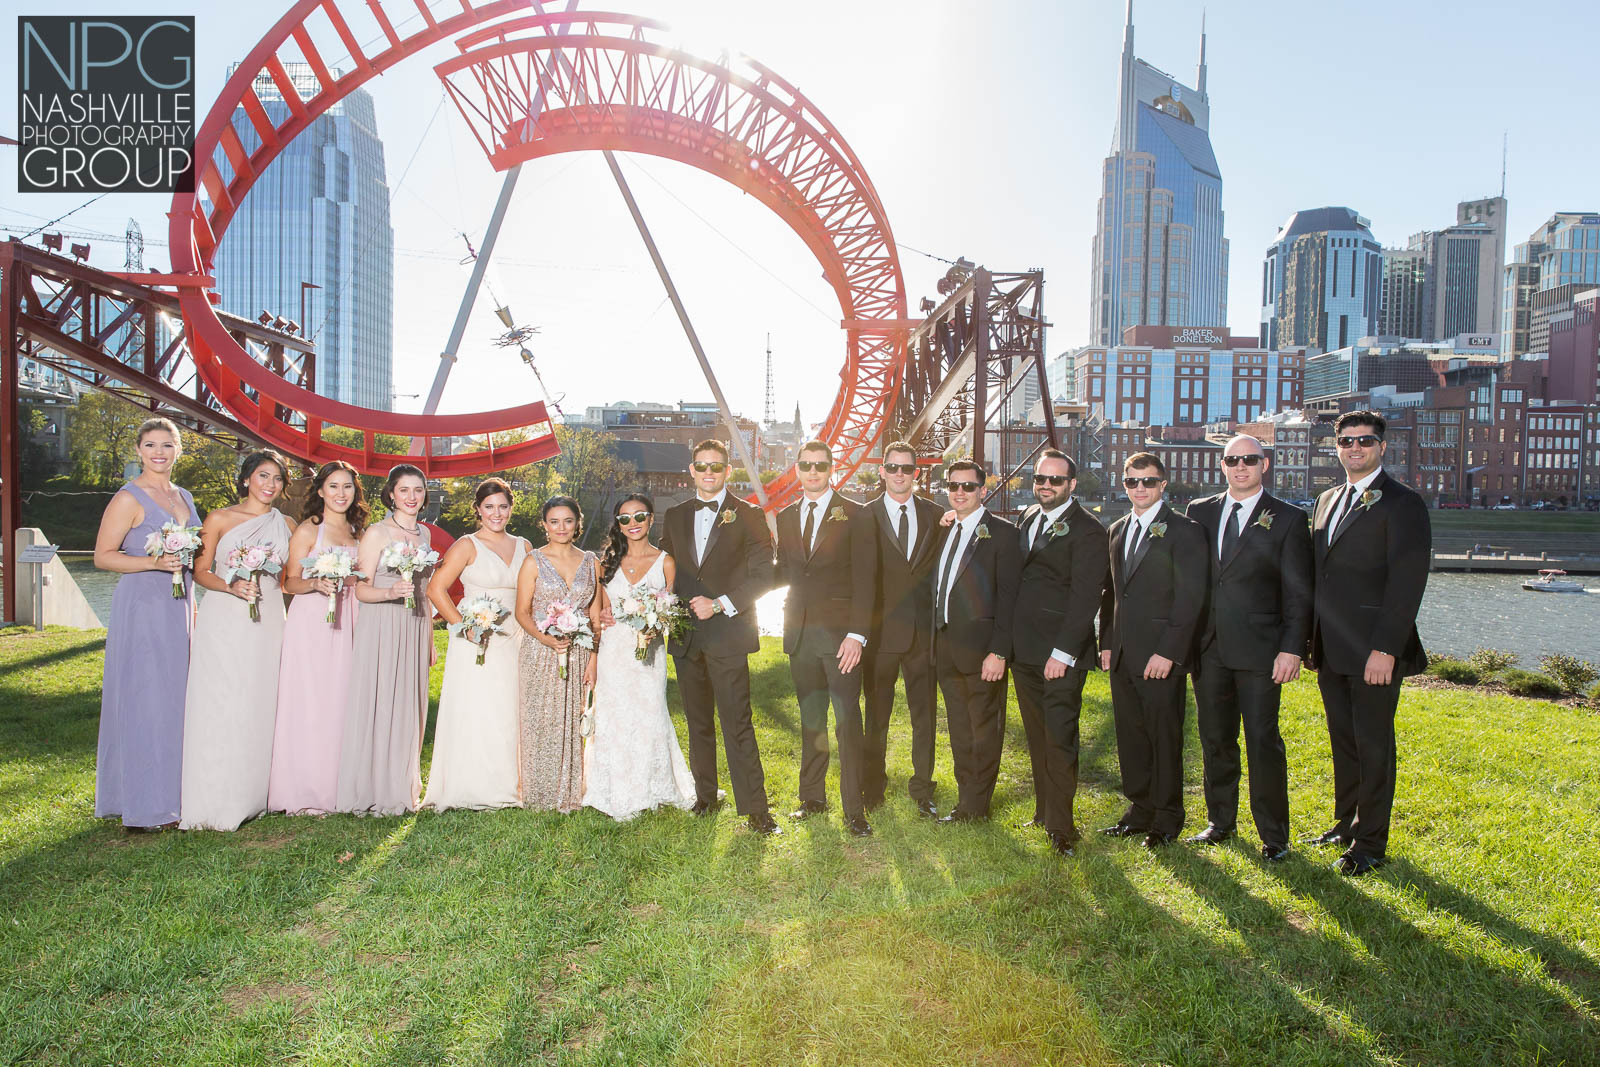 Nashville Photography Group wedding photographers1-7.jpg